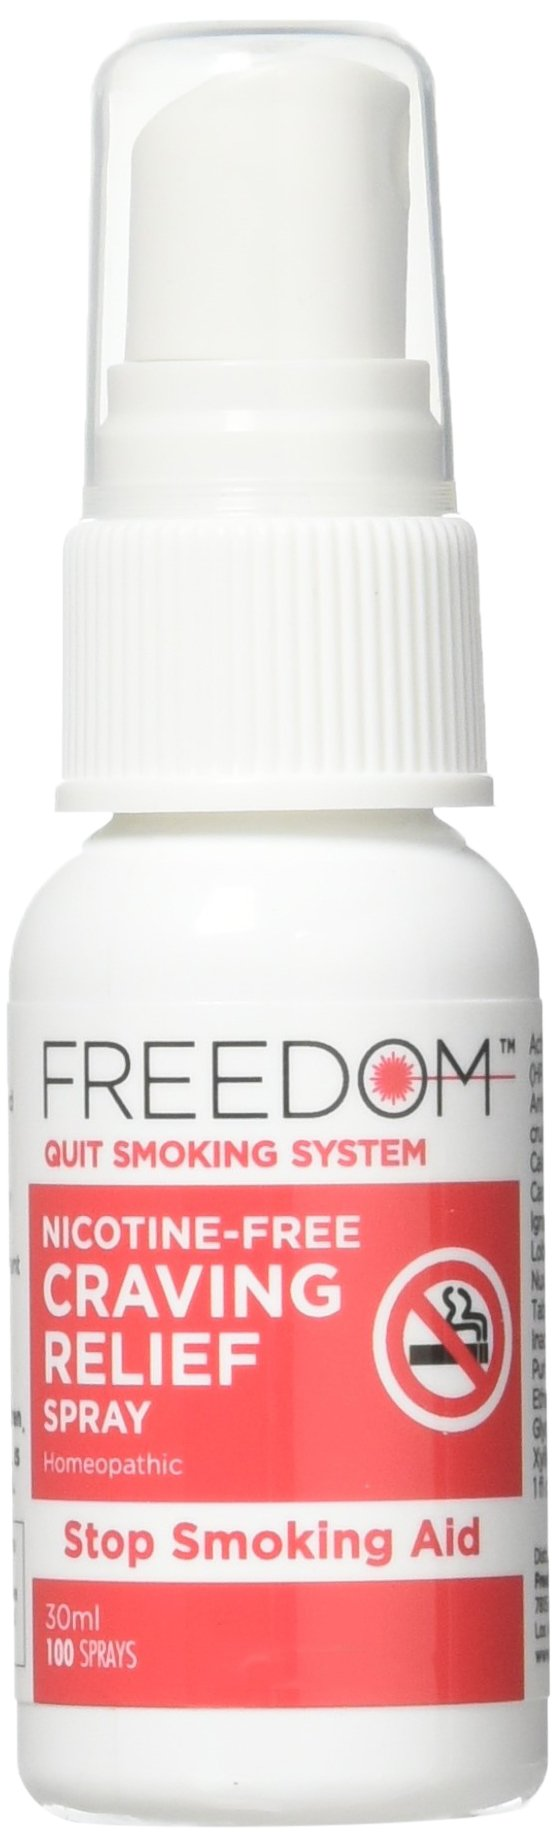 Freedom Quit Smoking, Nicotine Craving Relief Spray – Quit Smoking Naturally Now – Reduce Cigarette Cravings, Fight Nicotine Withdrawal Symptoms, An Easy Way to Quit Smoking Cigarettes Without Side Effects – An All Natural & Nicotine Free Stop Smoking Aid, 1 Oz